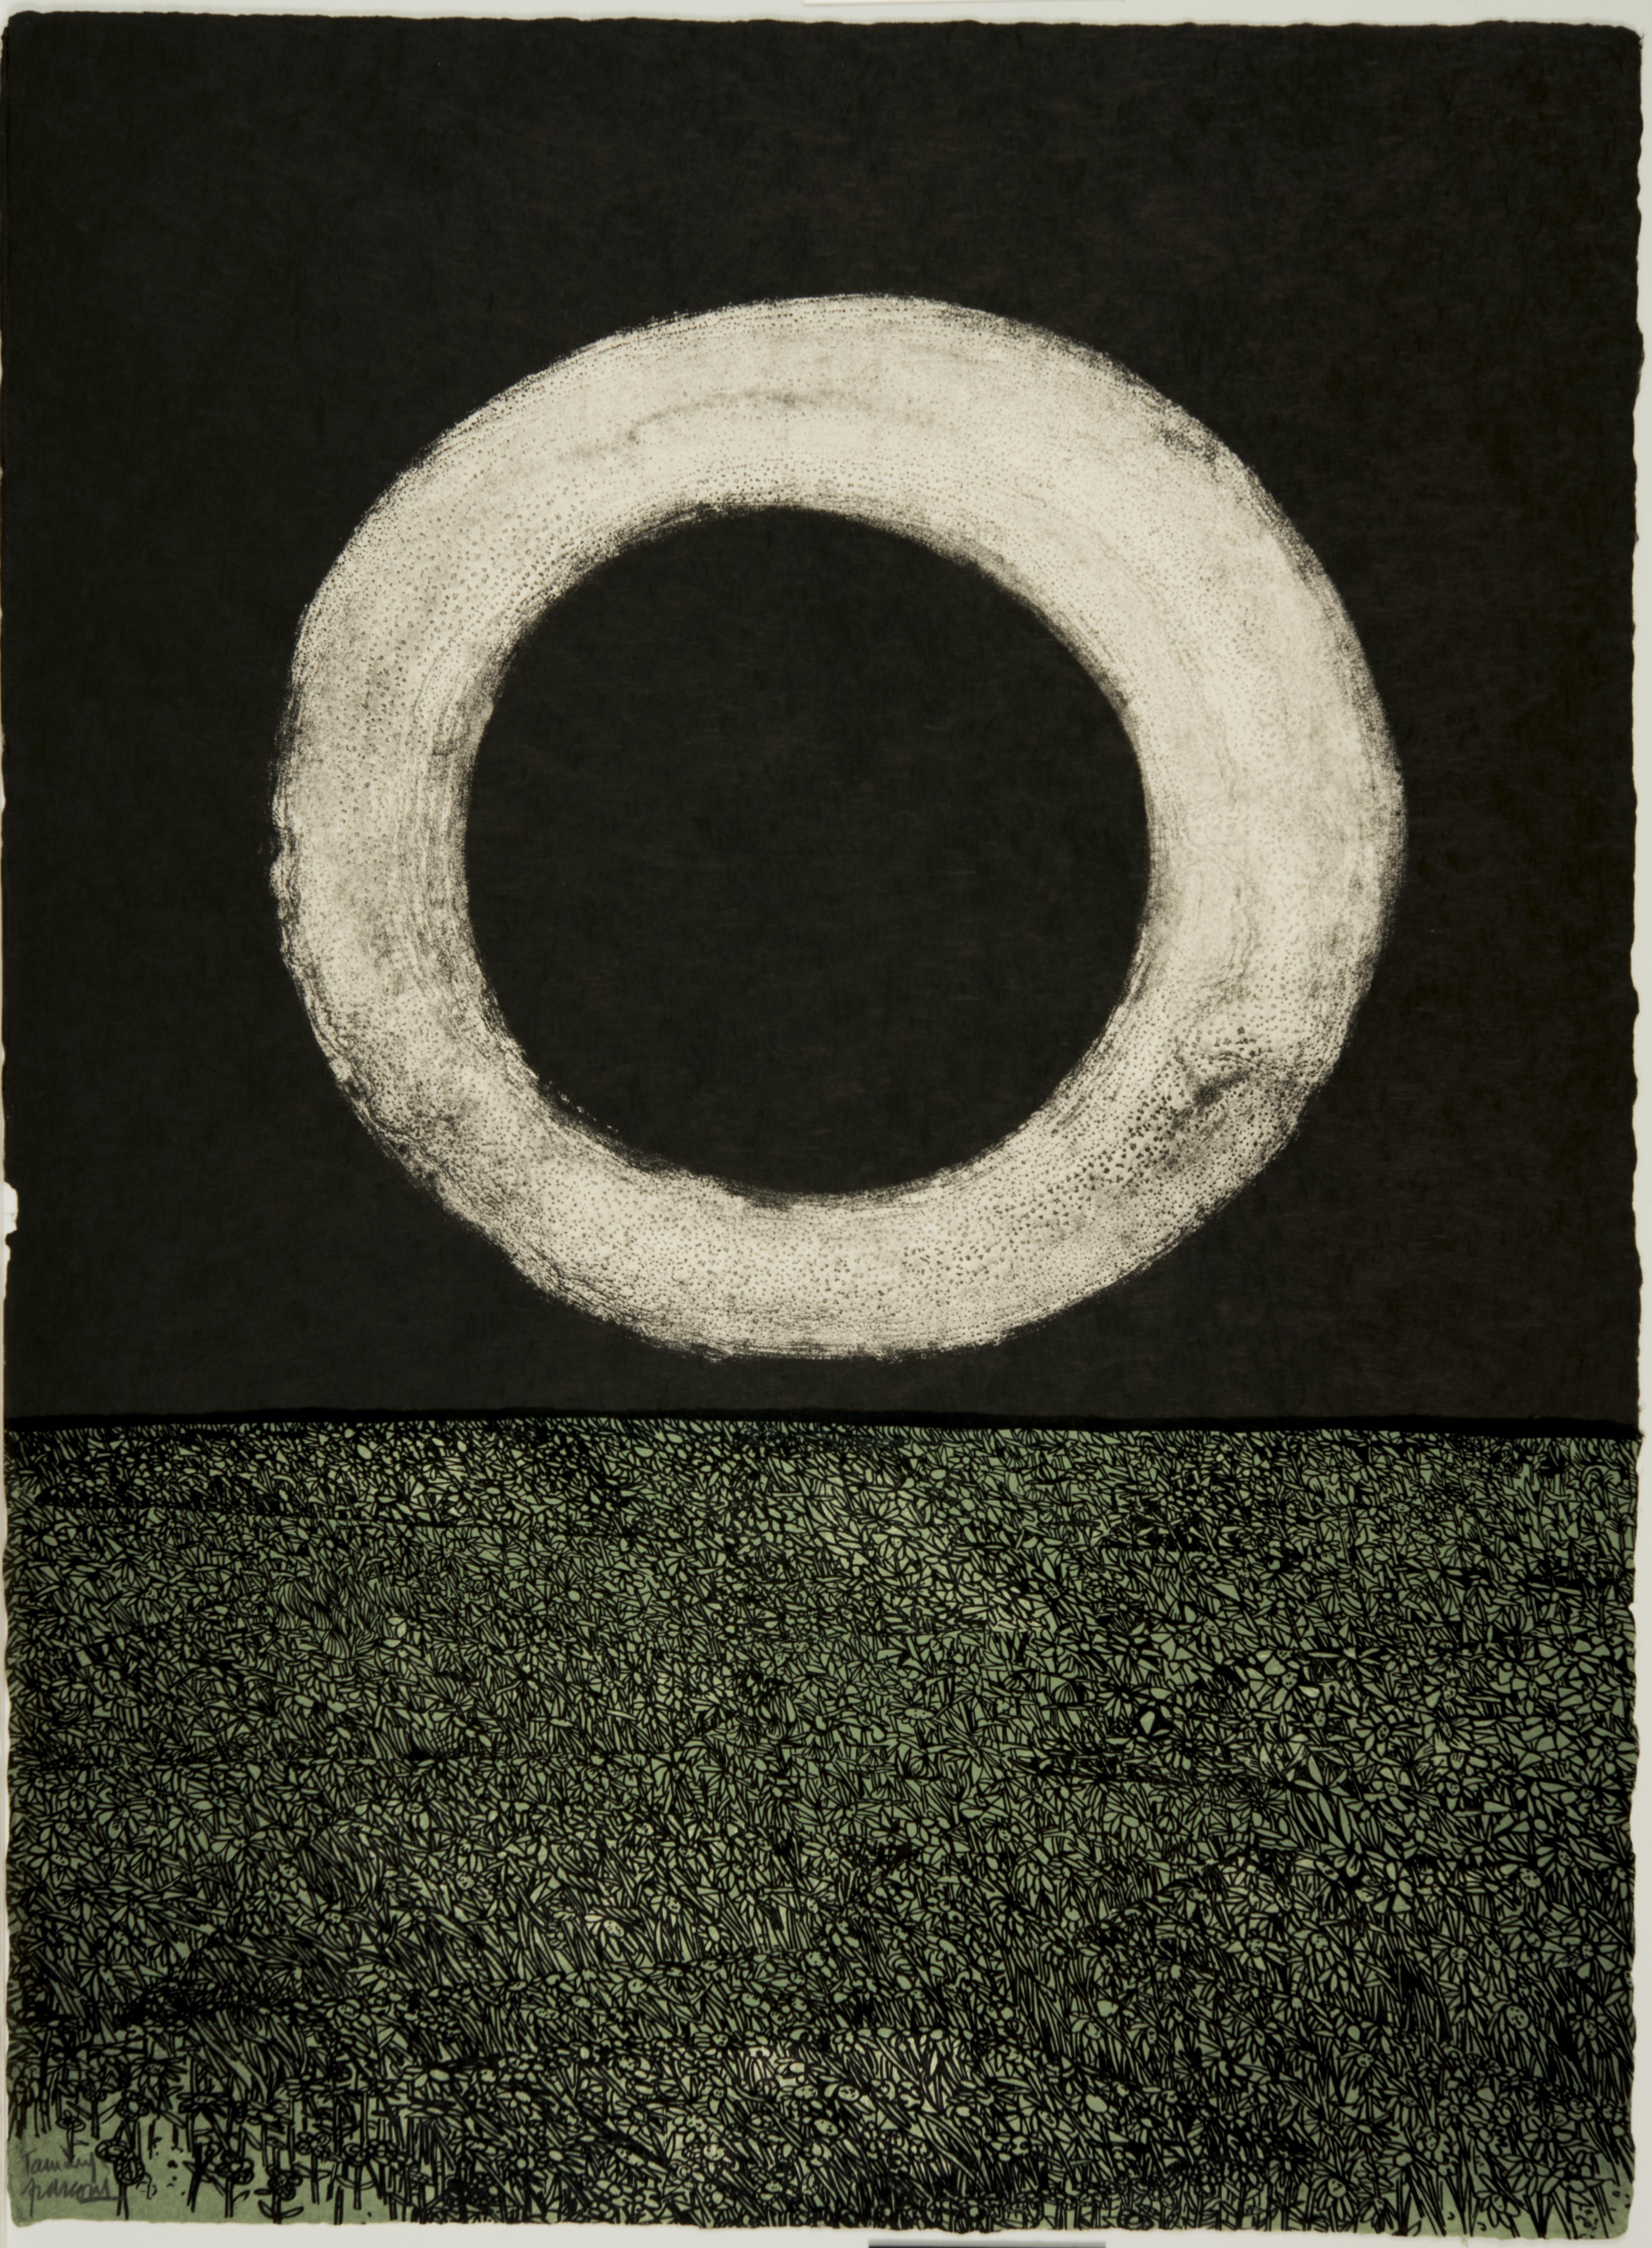 Antonio Frasconi, Moon (XIV), March 16-23, 1962